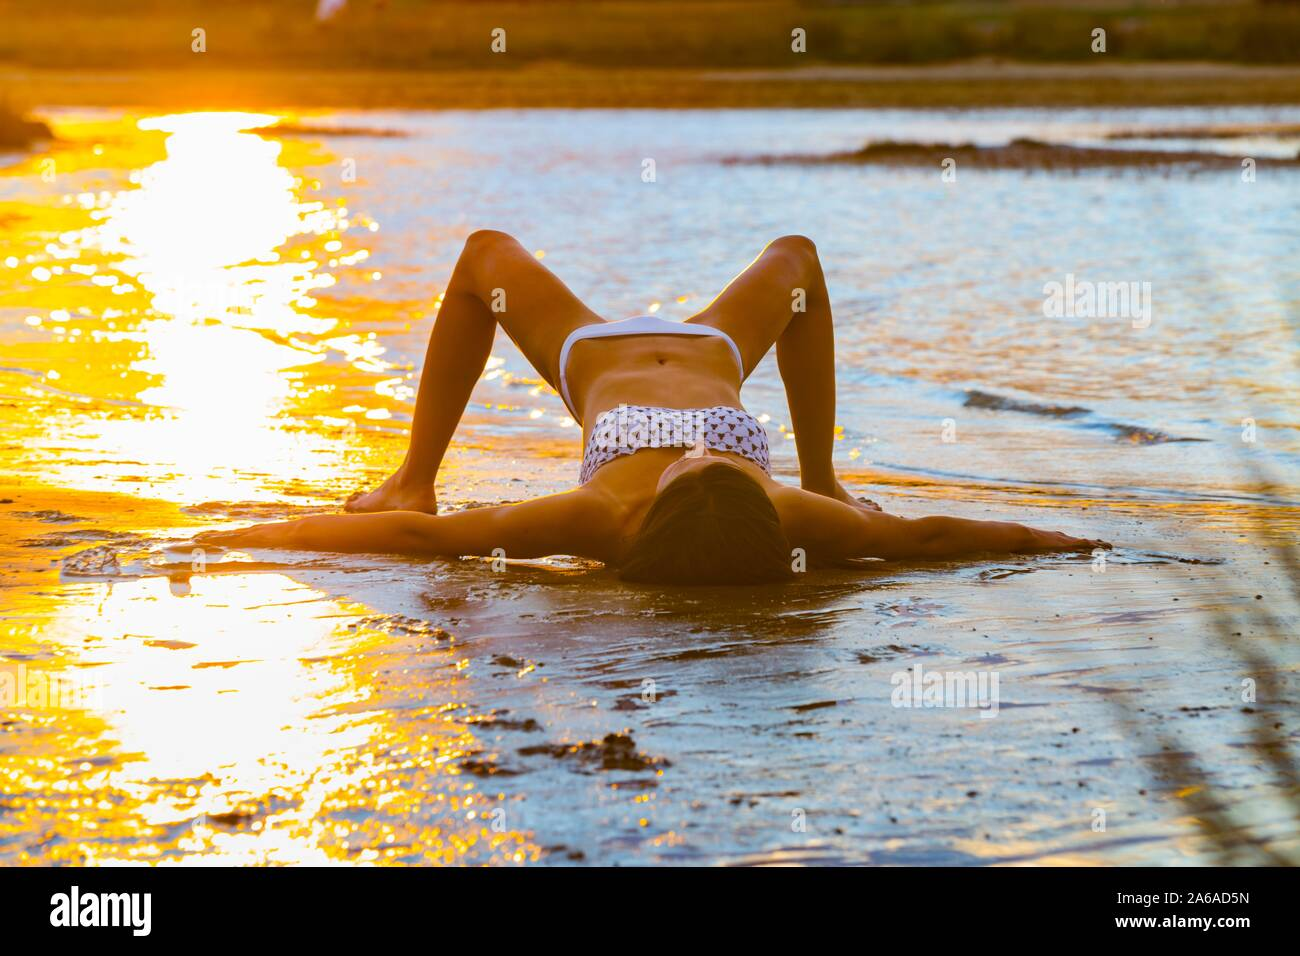 Overstretched on beach in sunset time late day spreading arms and legs in shallow water sea Stock Photo